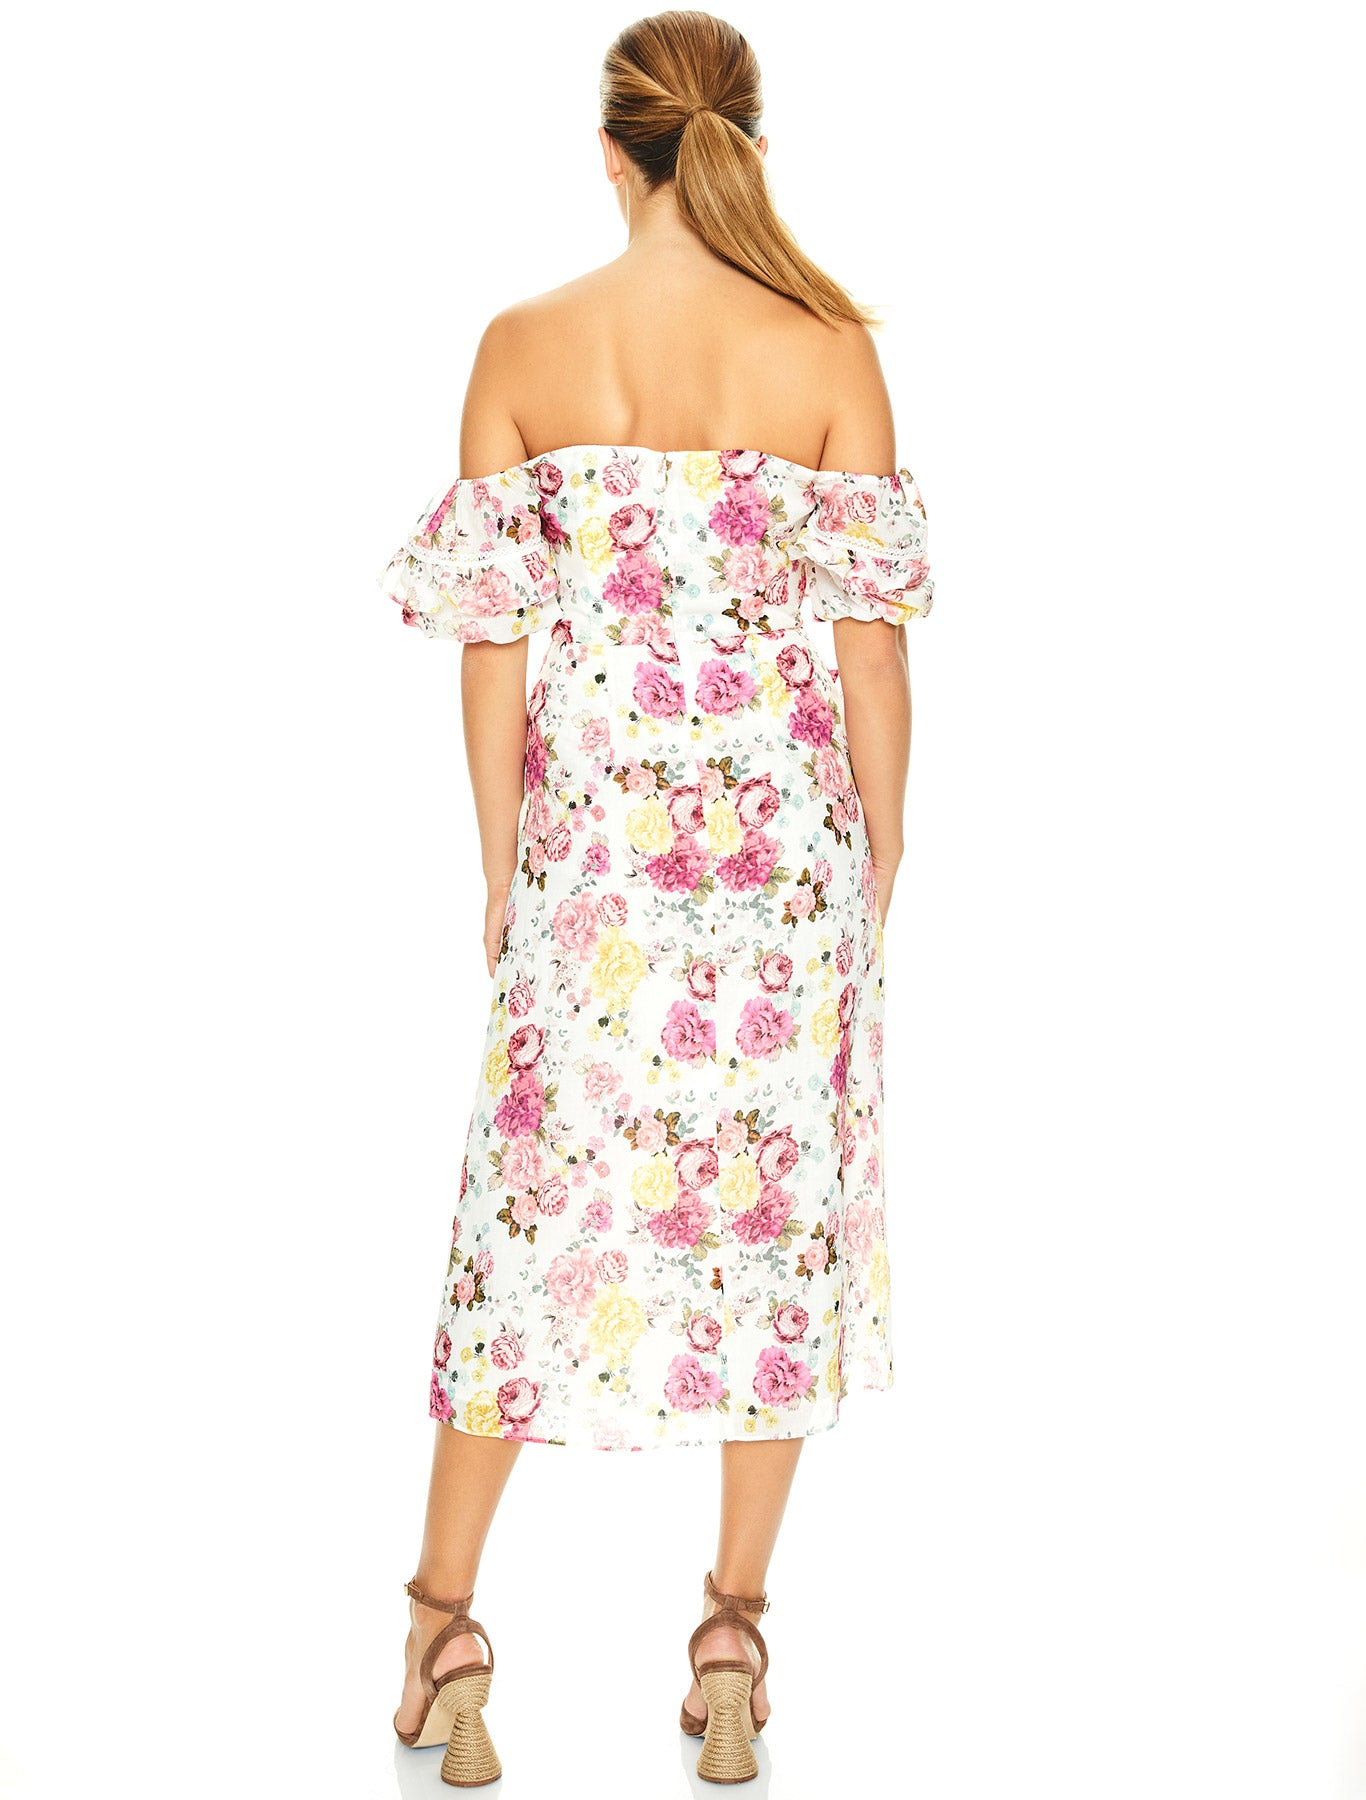 TEA TIME MIDI DRESS